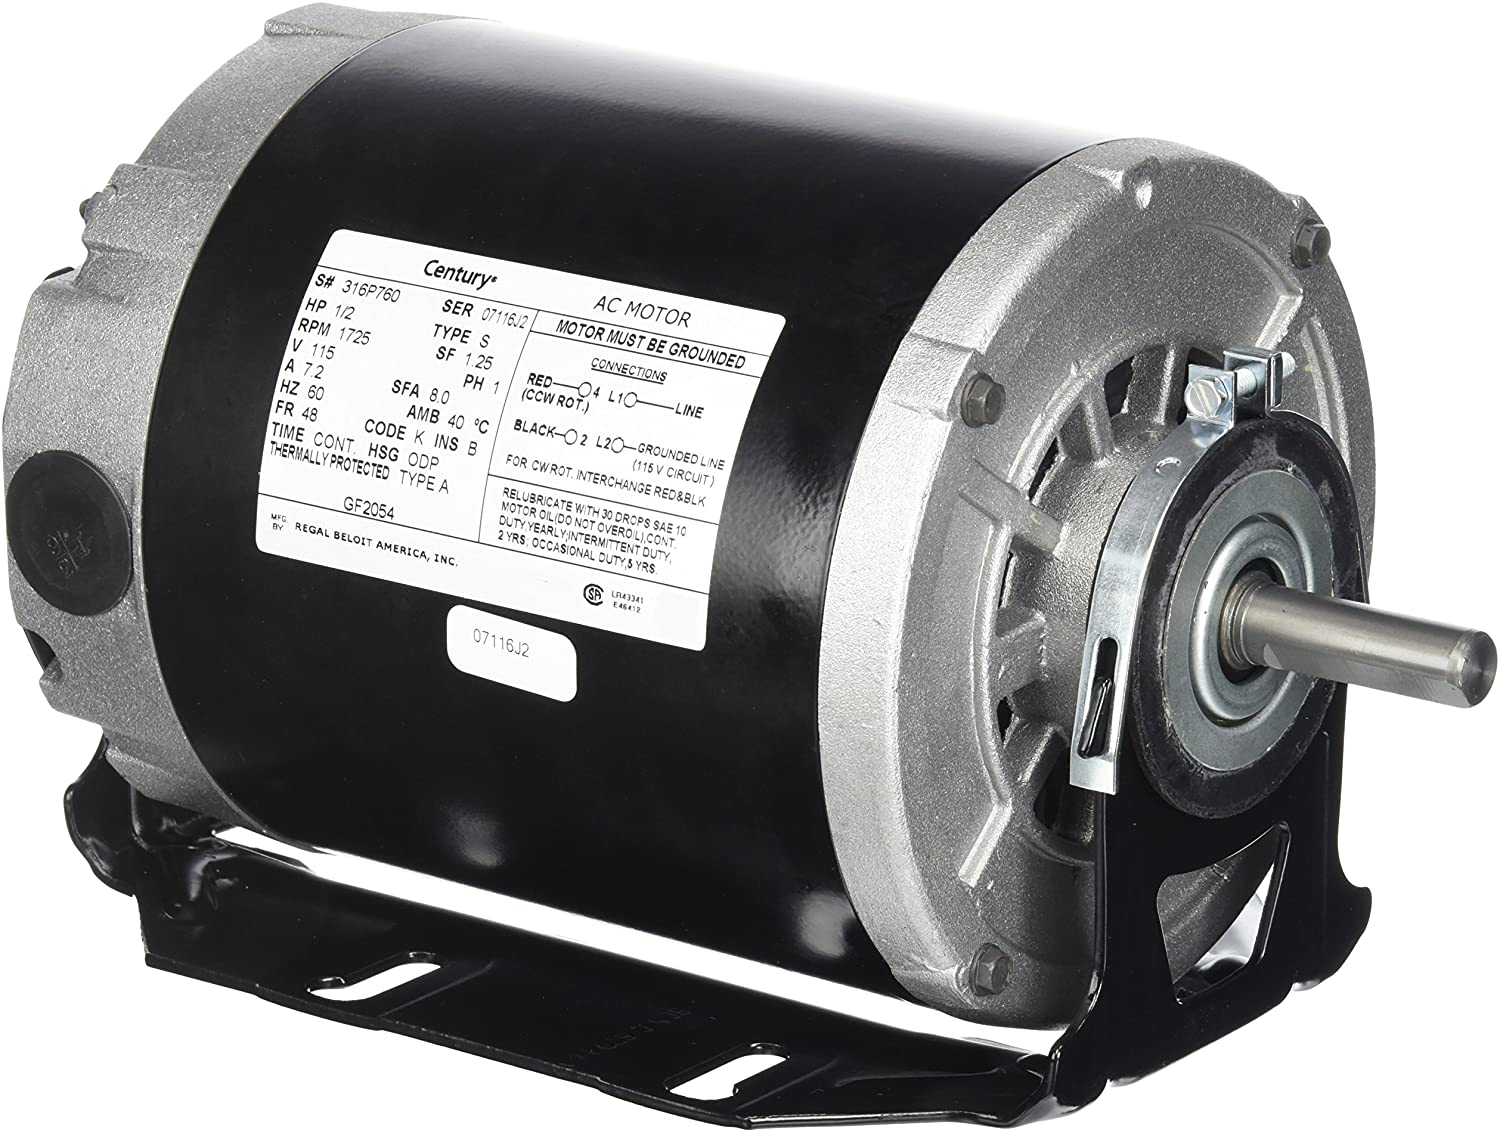 Century formerly AO Smith GF2054 1/2 hp, 1725 RPM, 115 volts, 48/56 Frame, ODP, Sleeve Bearing Belt Drive Blower Motor: Electric Fan Motors: Tools & Home Improvement